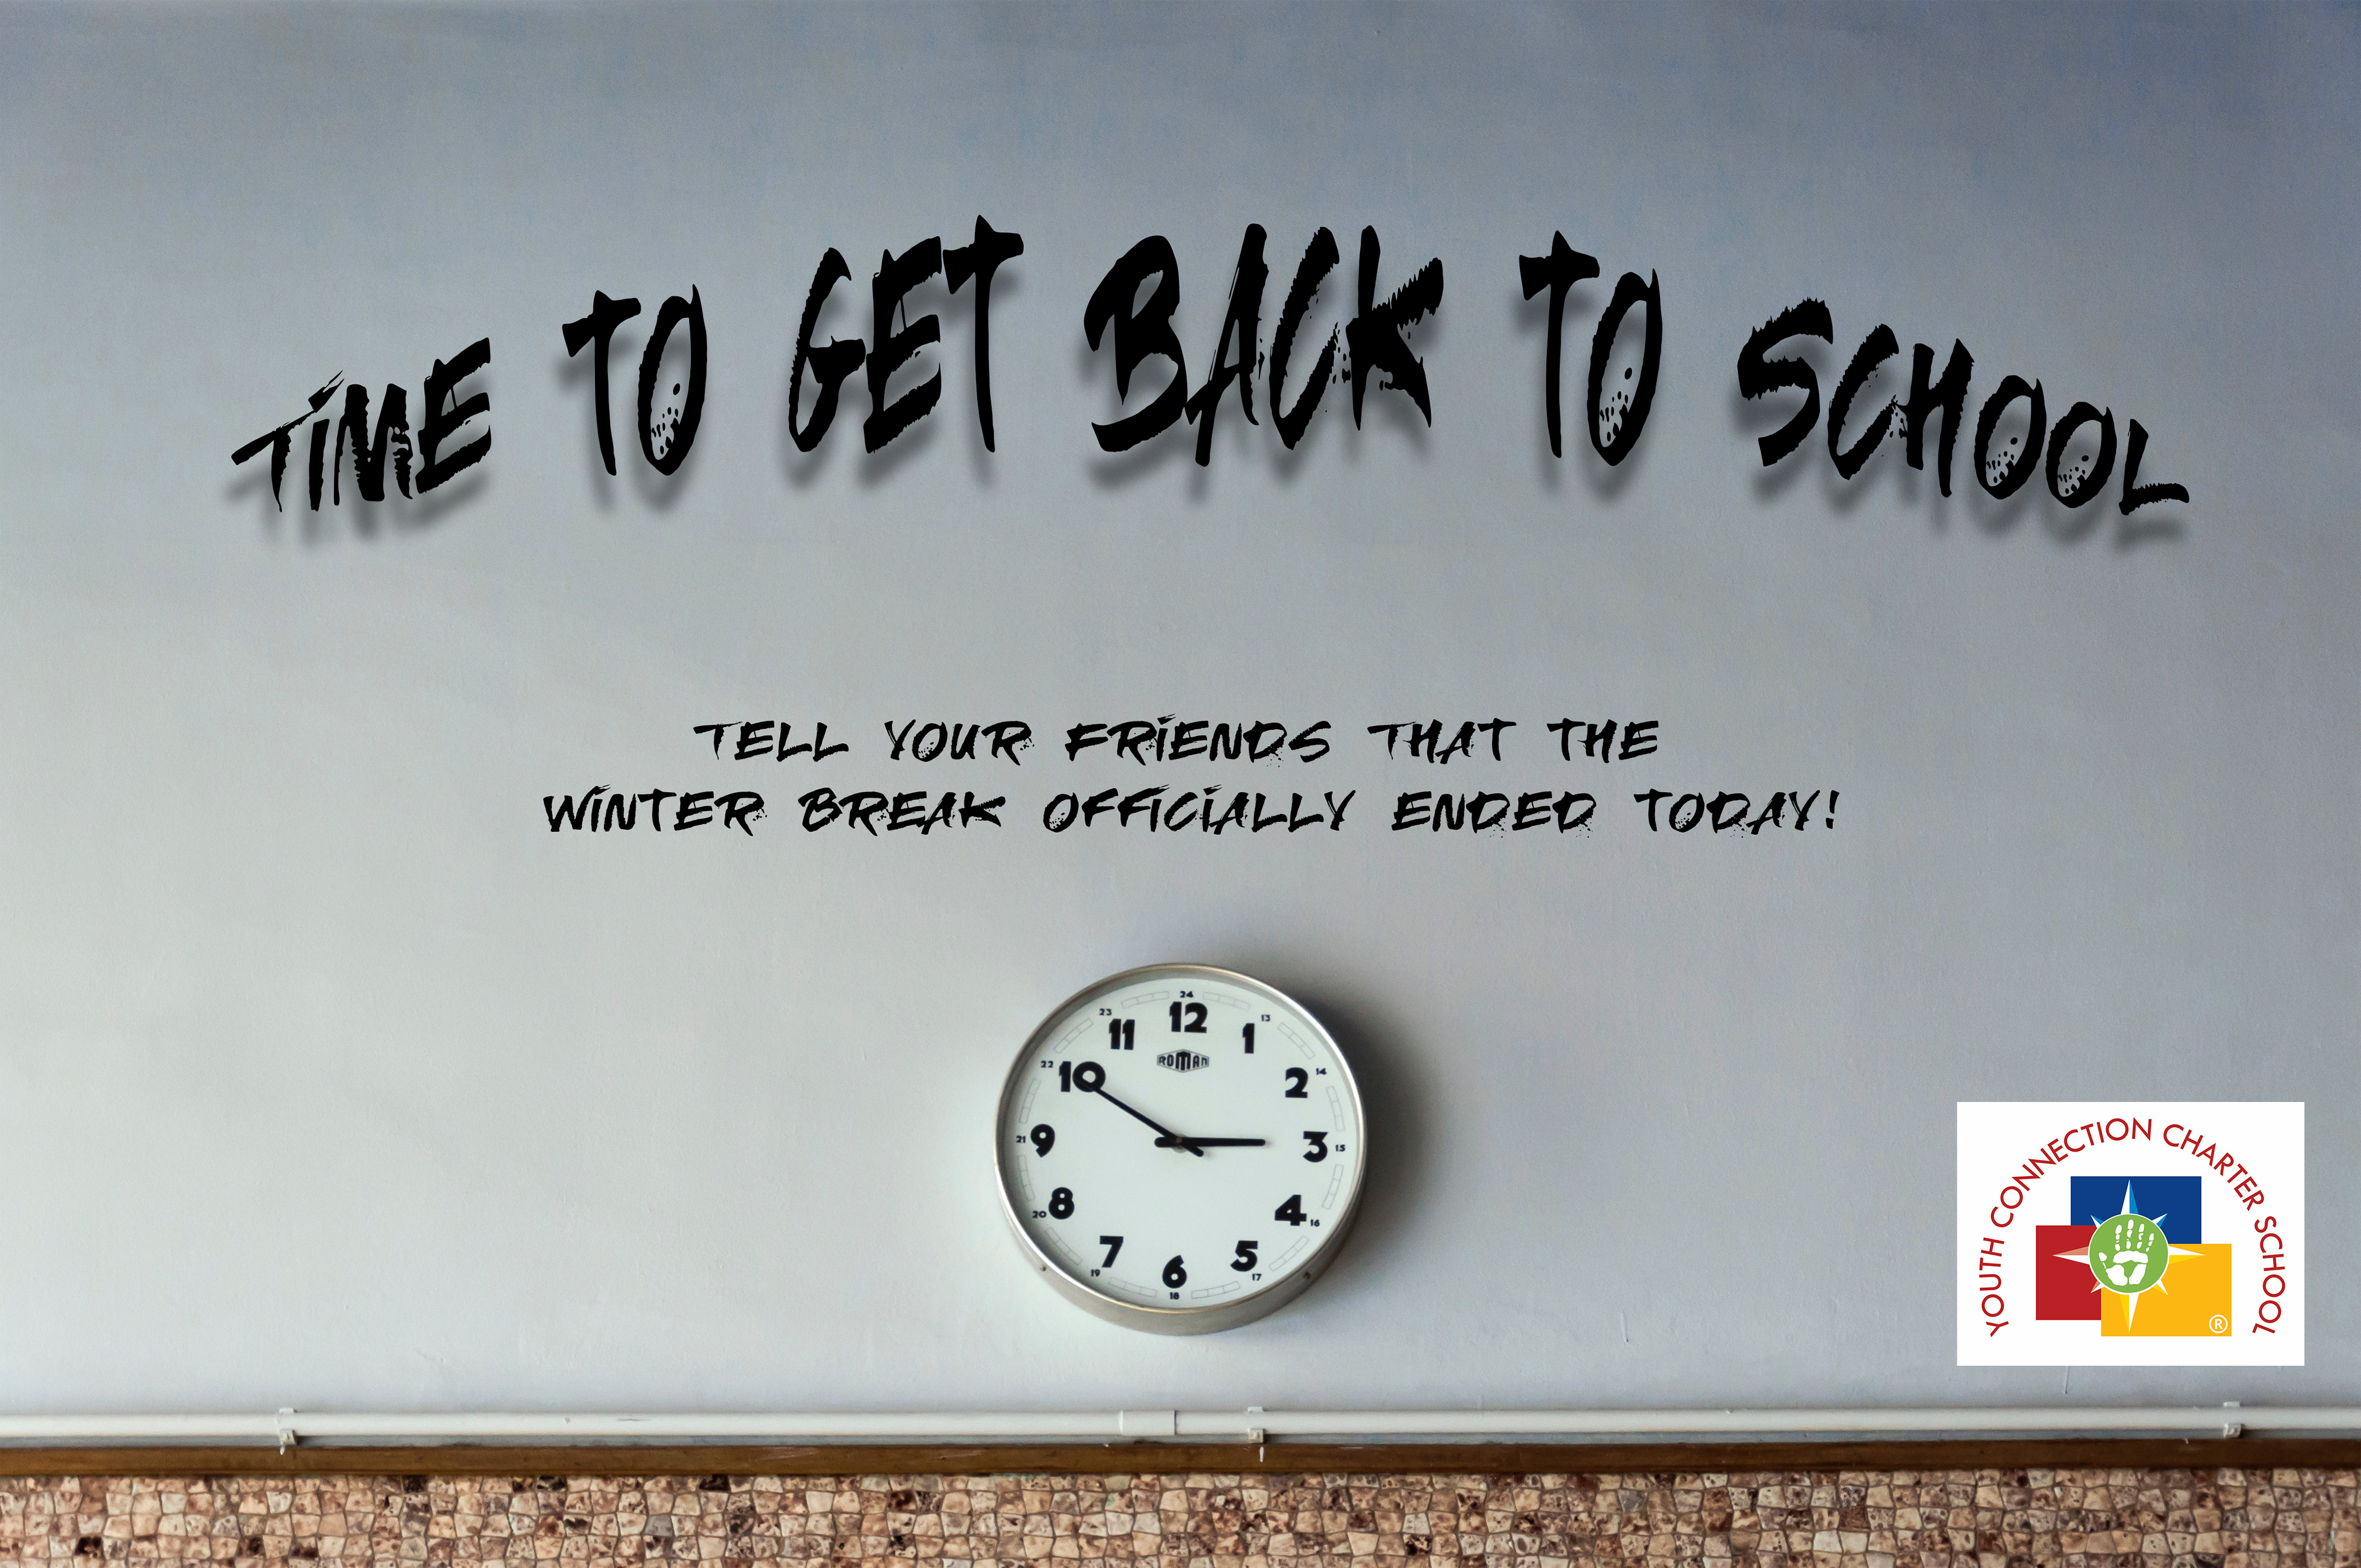 Winter Break is over. It's time to come back to school!